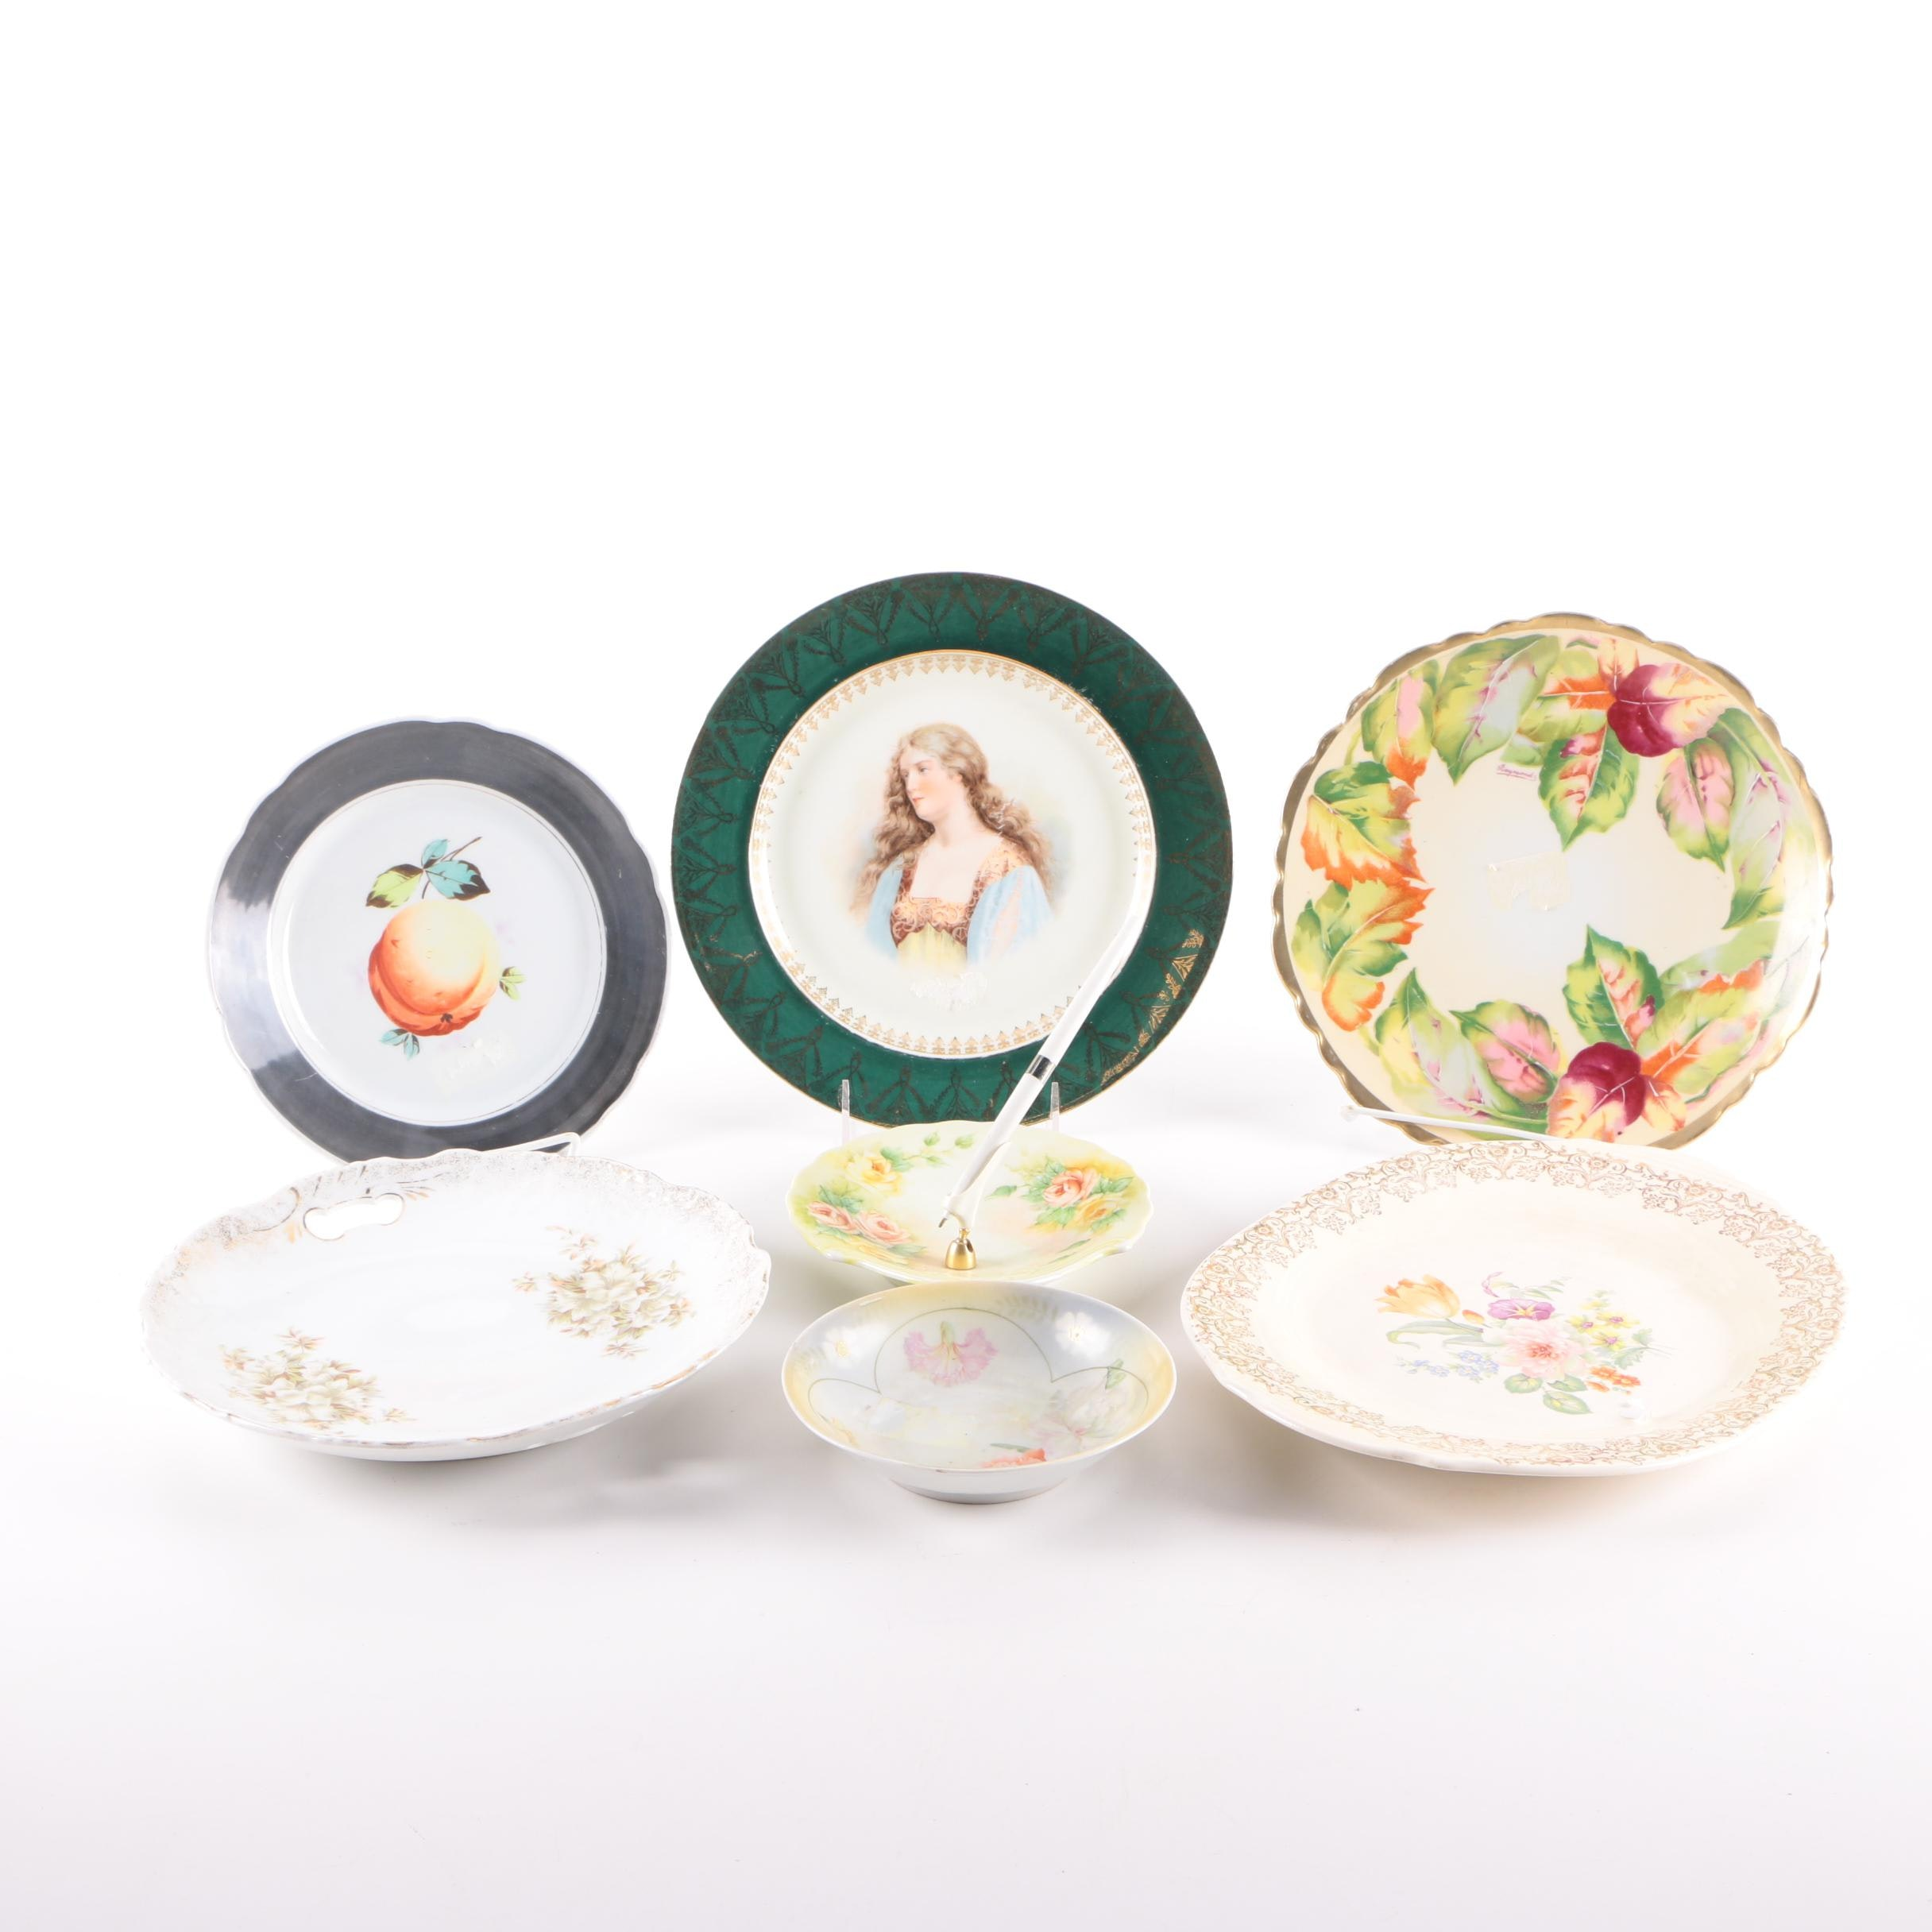 Vintage Porcelain Plates and Pen Holder